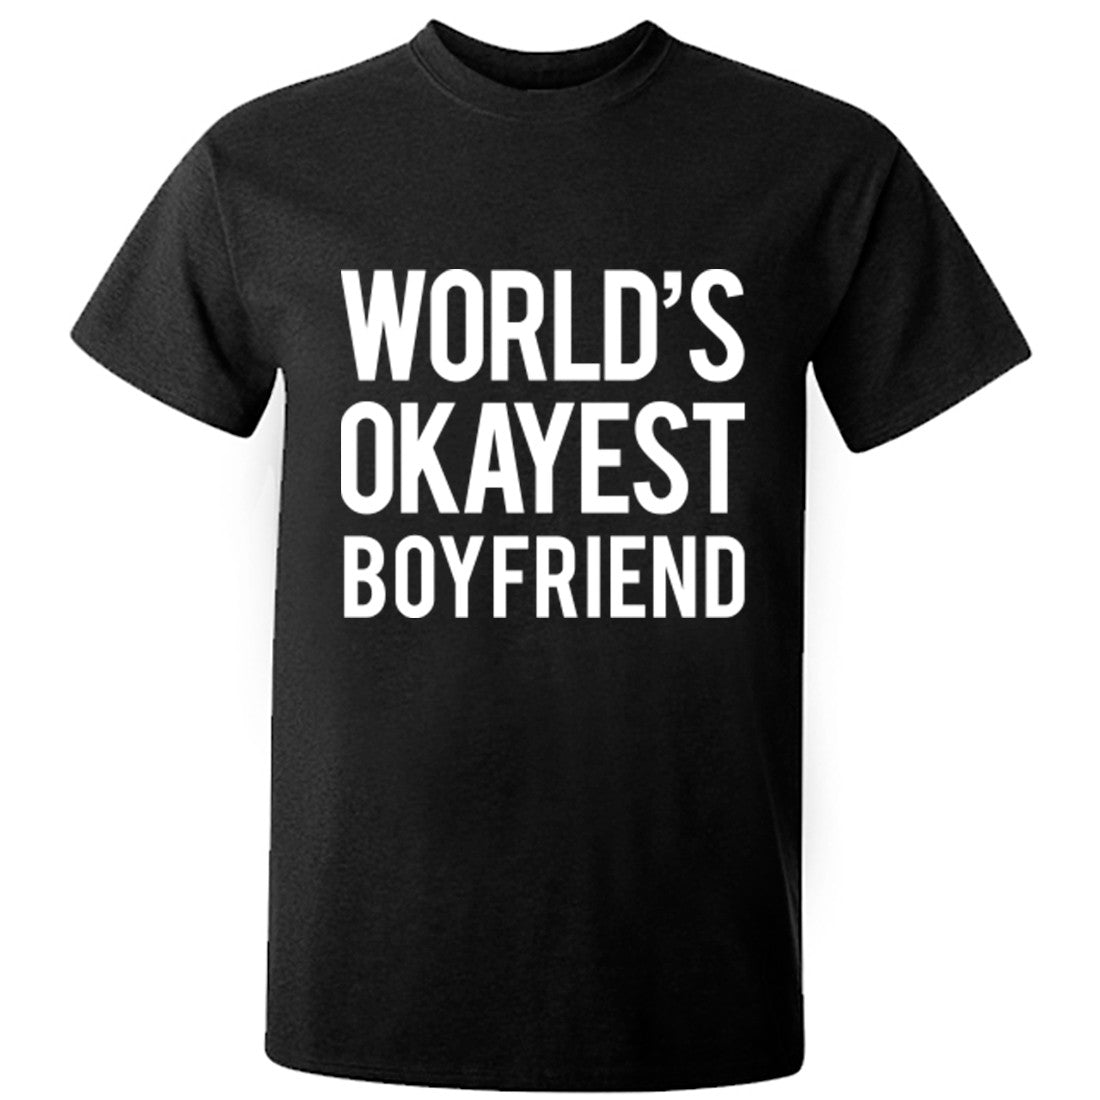 Worlds Okayest Boyfriend Unisex Fit T-Shirt K0481 - Illustrated Identity Ltd.